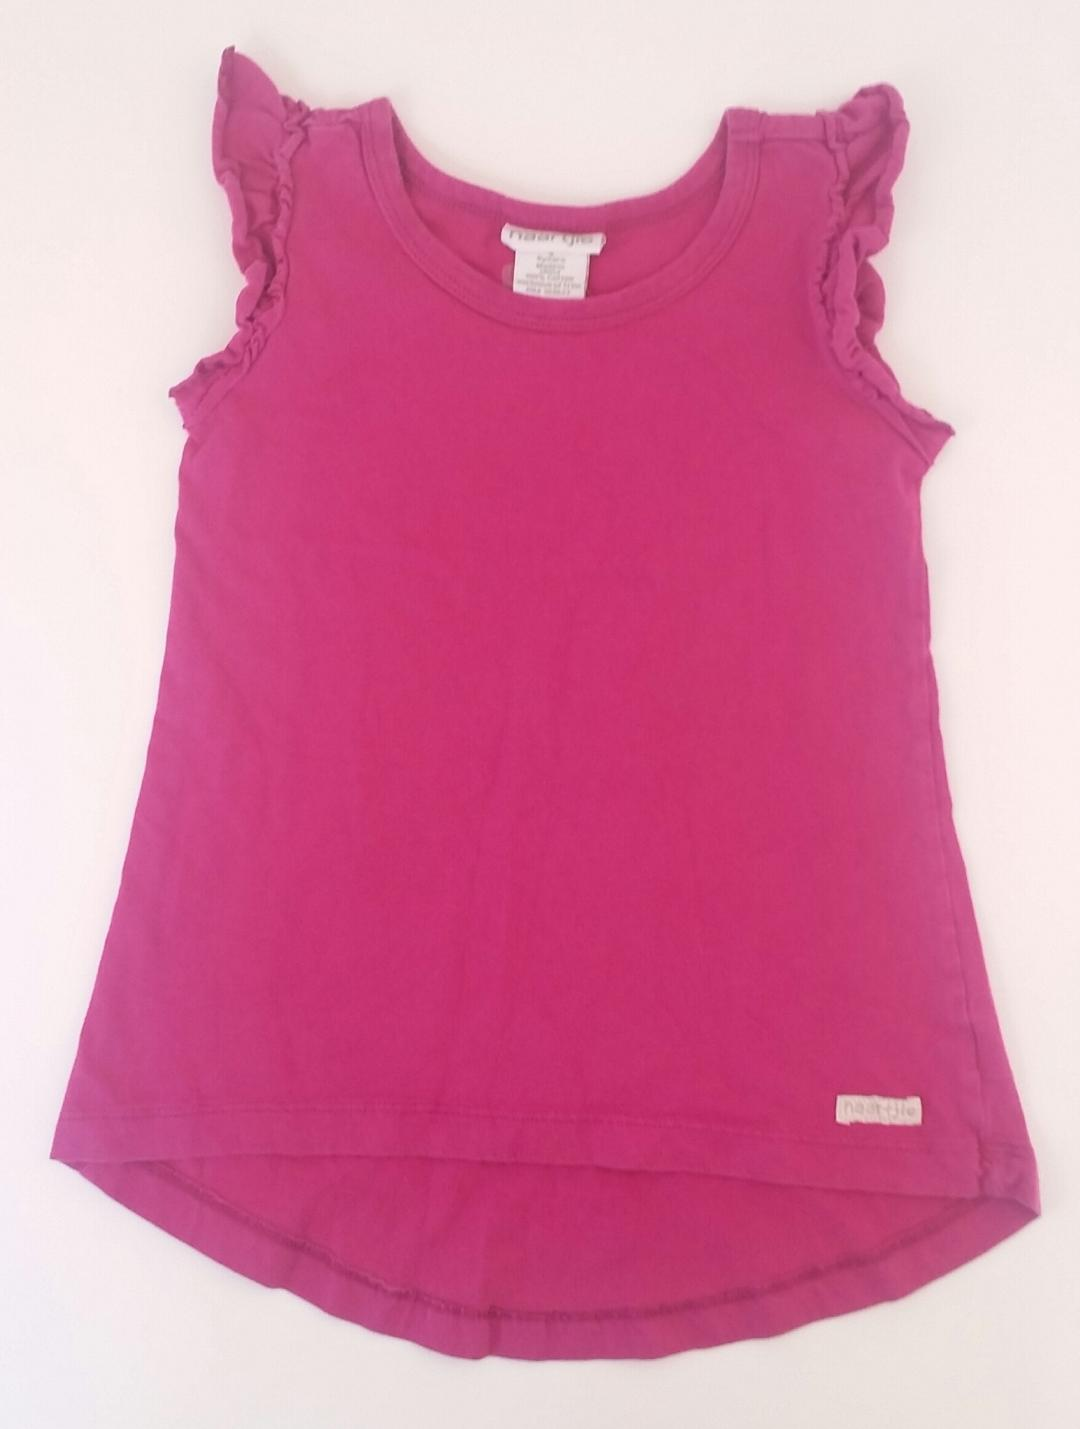 Naartjie-4-YEARS-Sleeveless-Shirt_2060155A.jpg